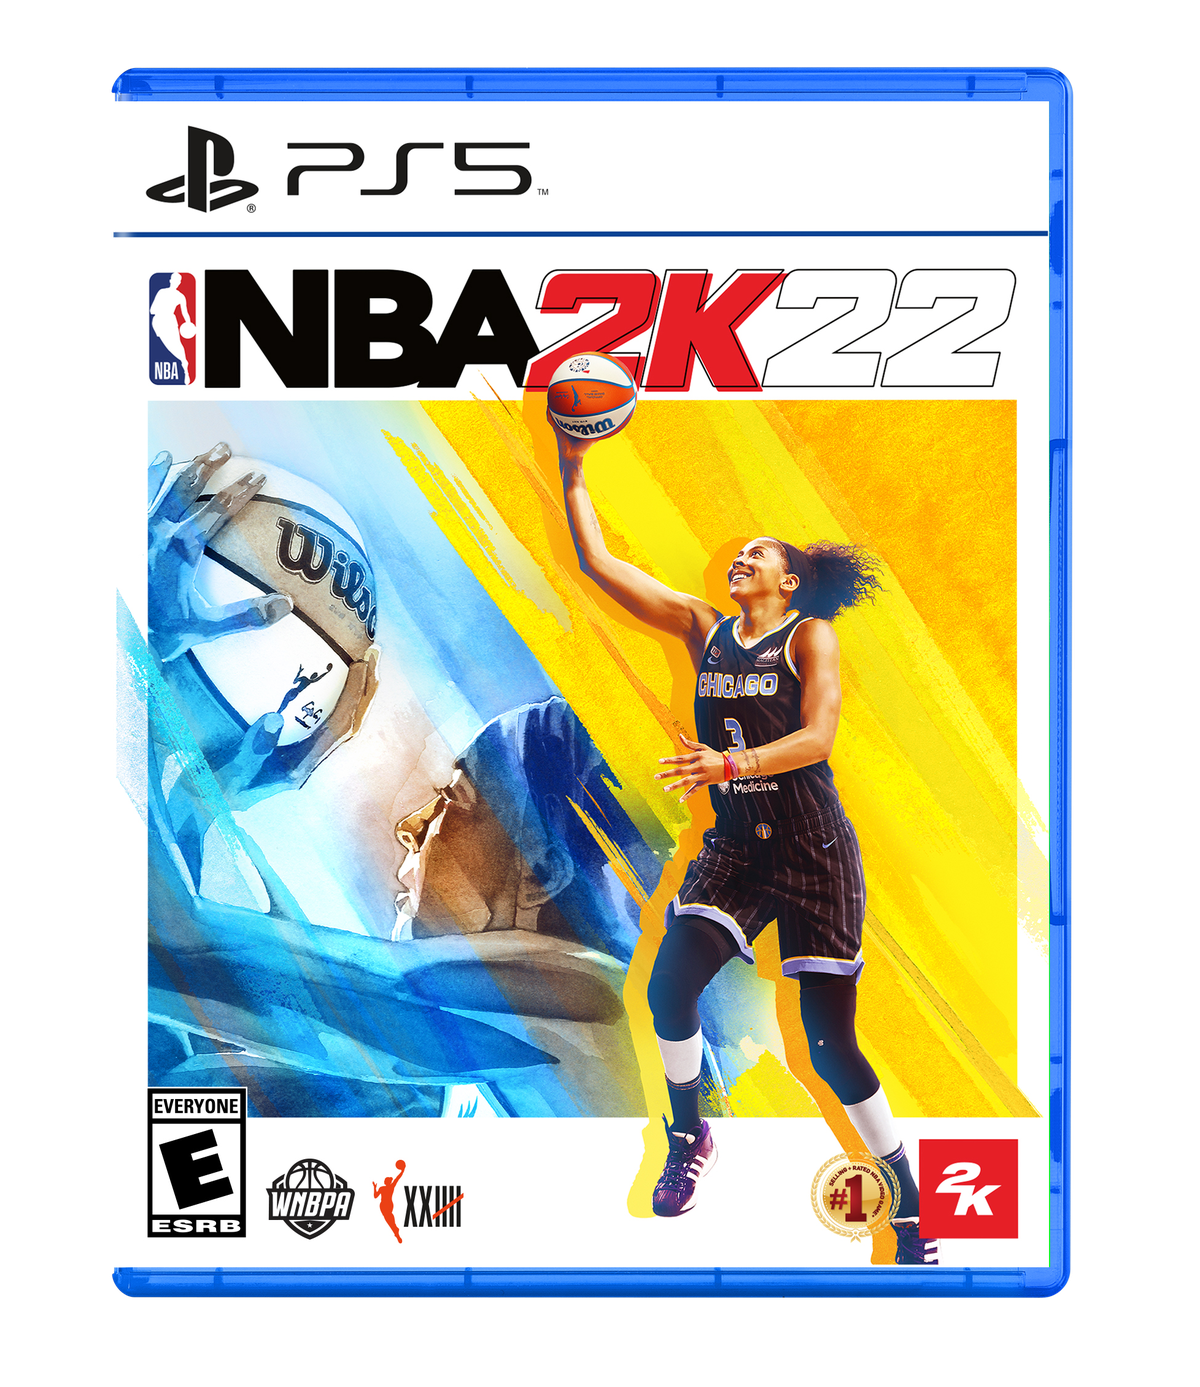 Candace Parker will be the first WNBA star for the NBA 2K22 cover.